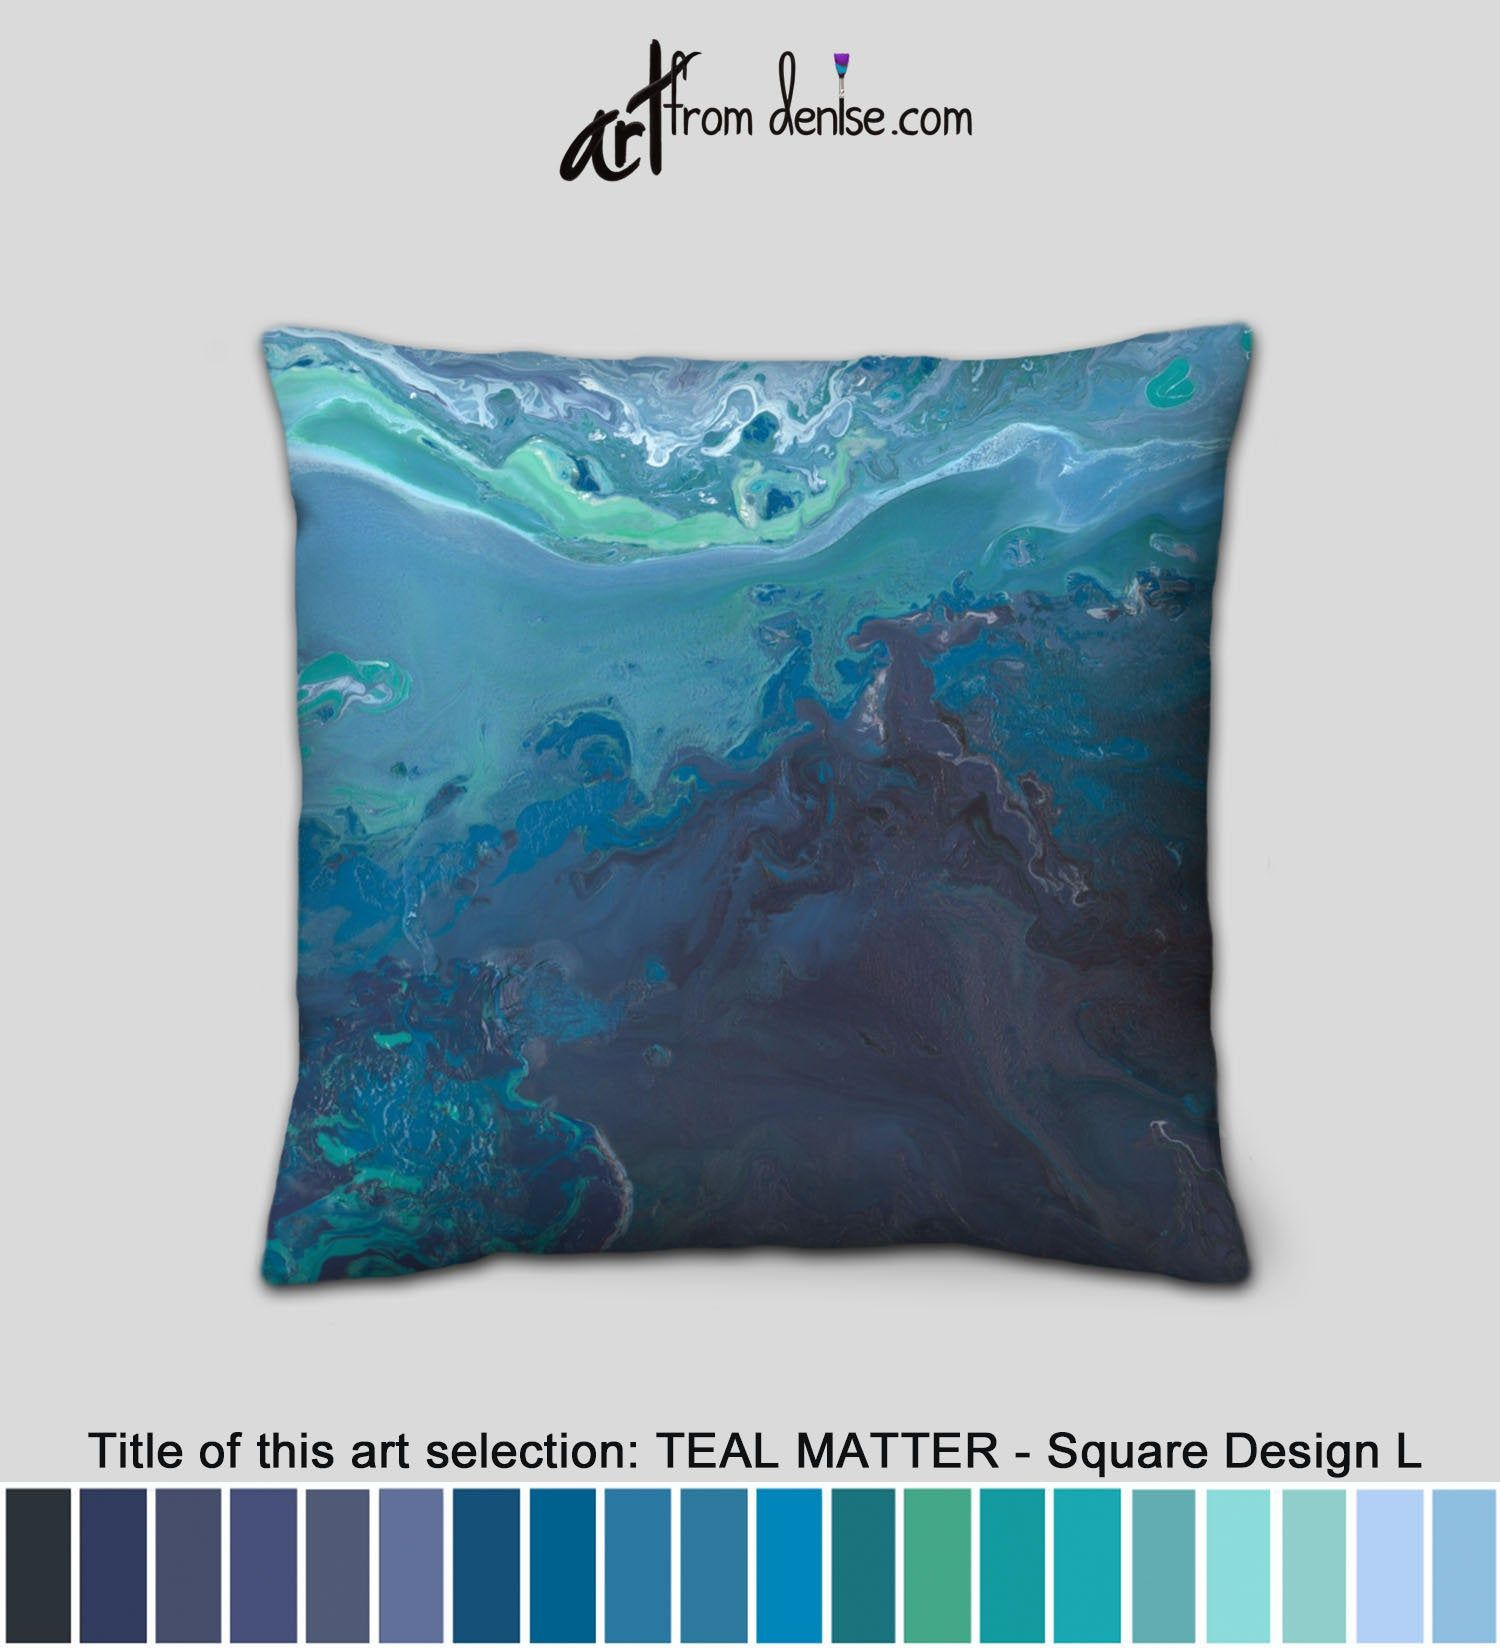 Gray Navy Teal Blue Small Decorative Pillow For Bed Decor Big Couch Pillows Set Or Oversized Throw Pillows For Outside Navy Blue Throw Pillows Blue Pillows Decorative Bed Pillows Decorative